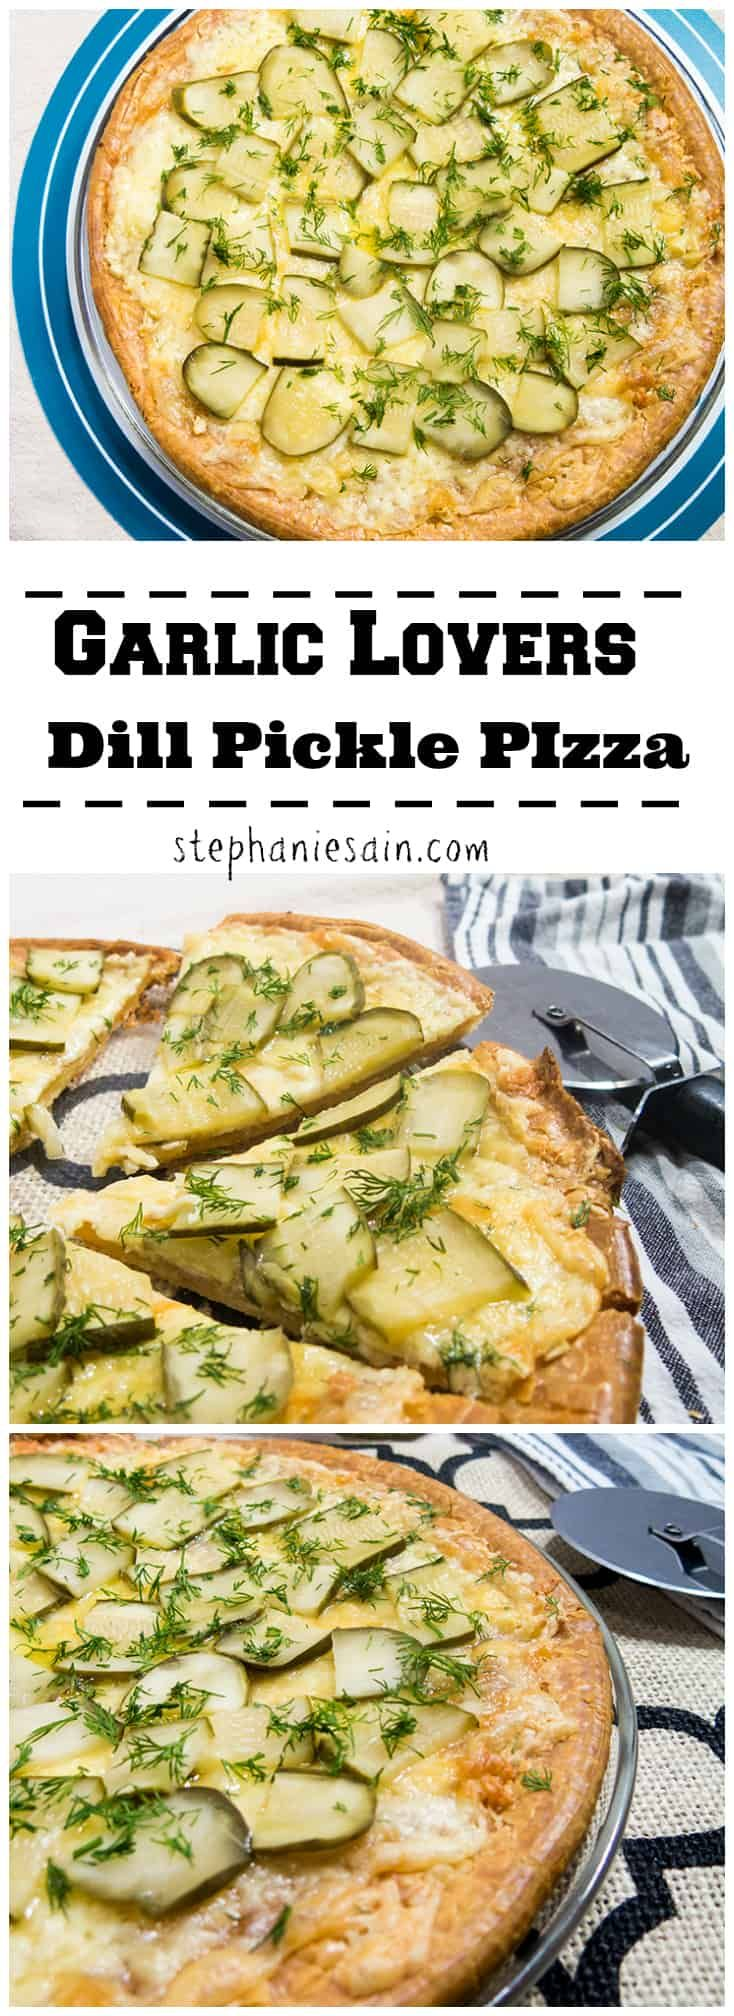 Garlic Lovers Dill Pickle Pizza | Apples for CJ